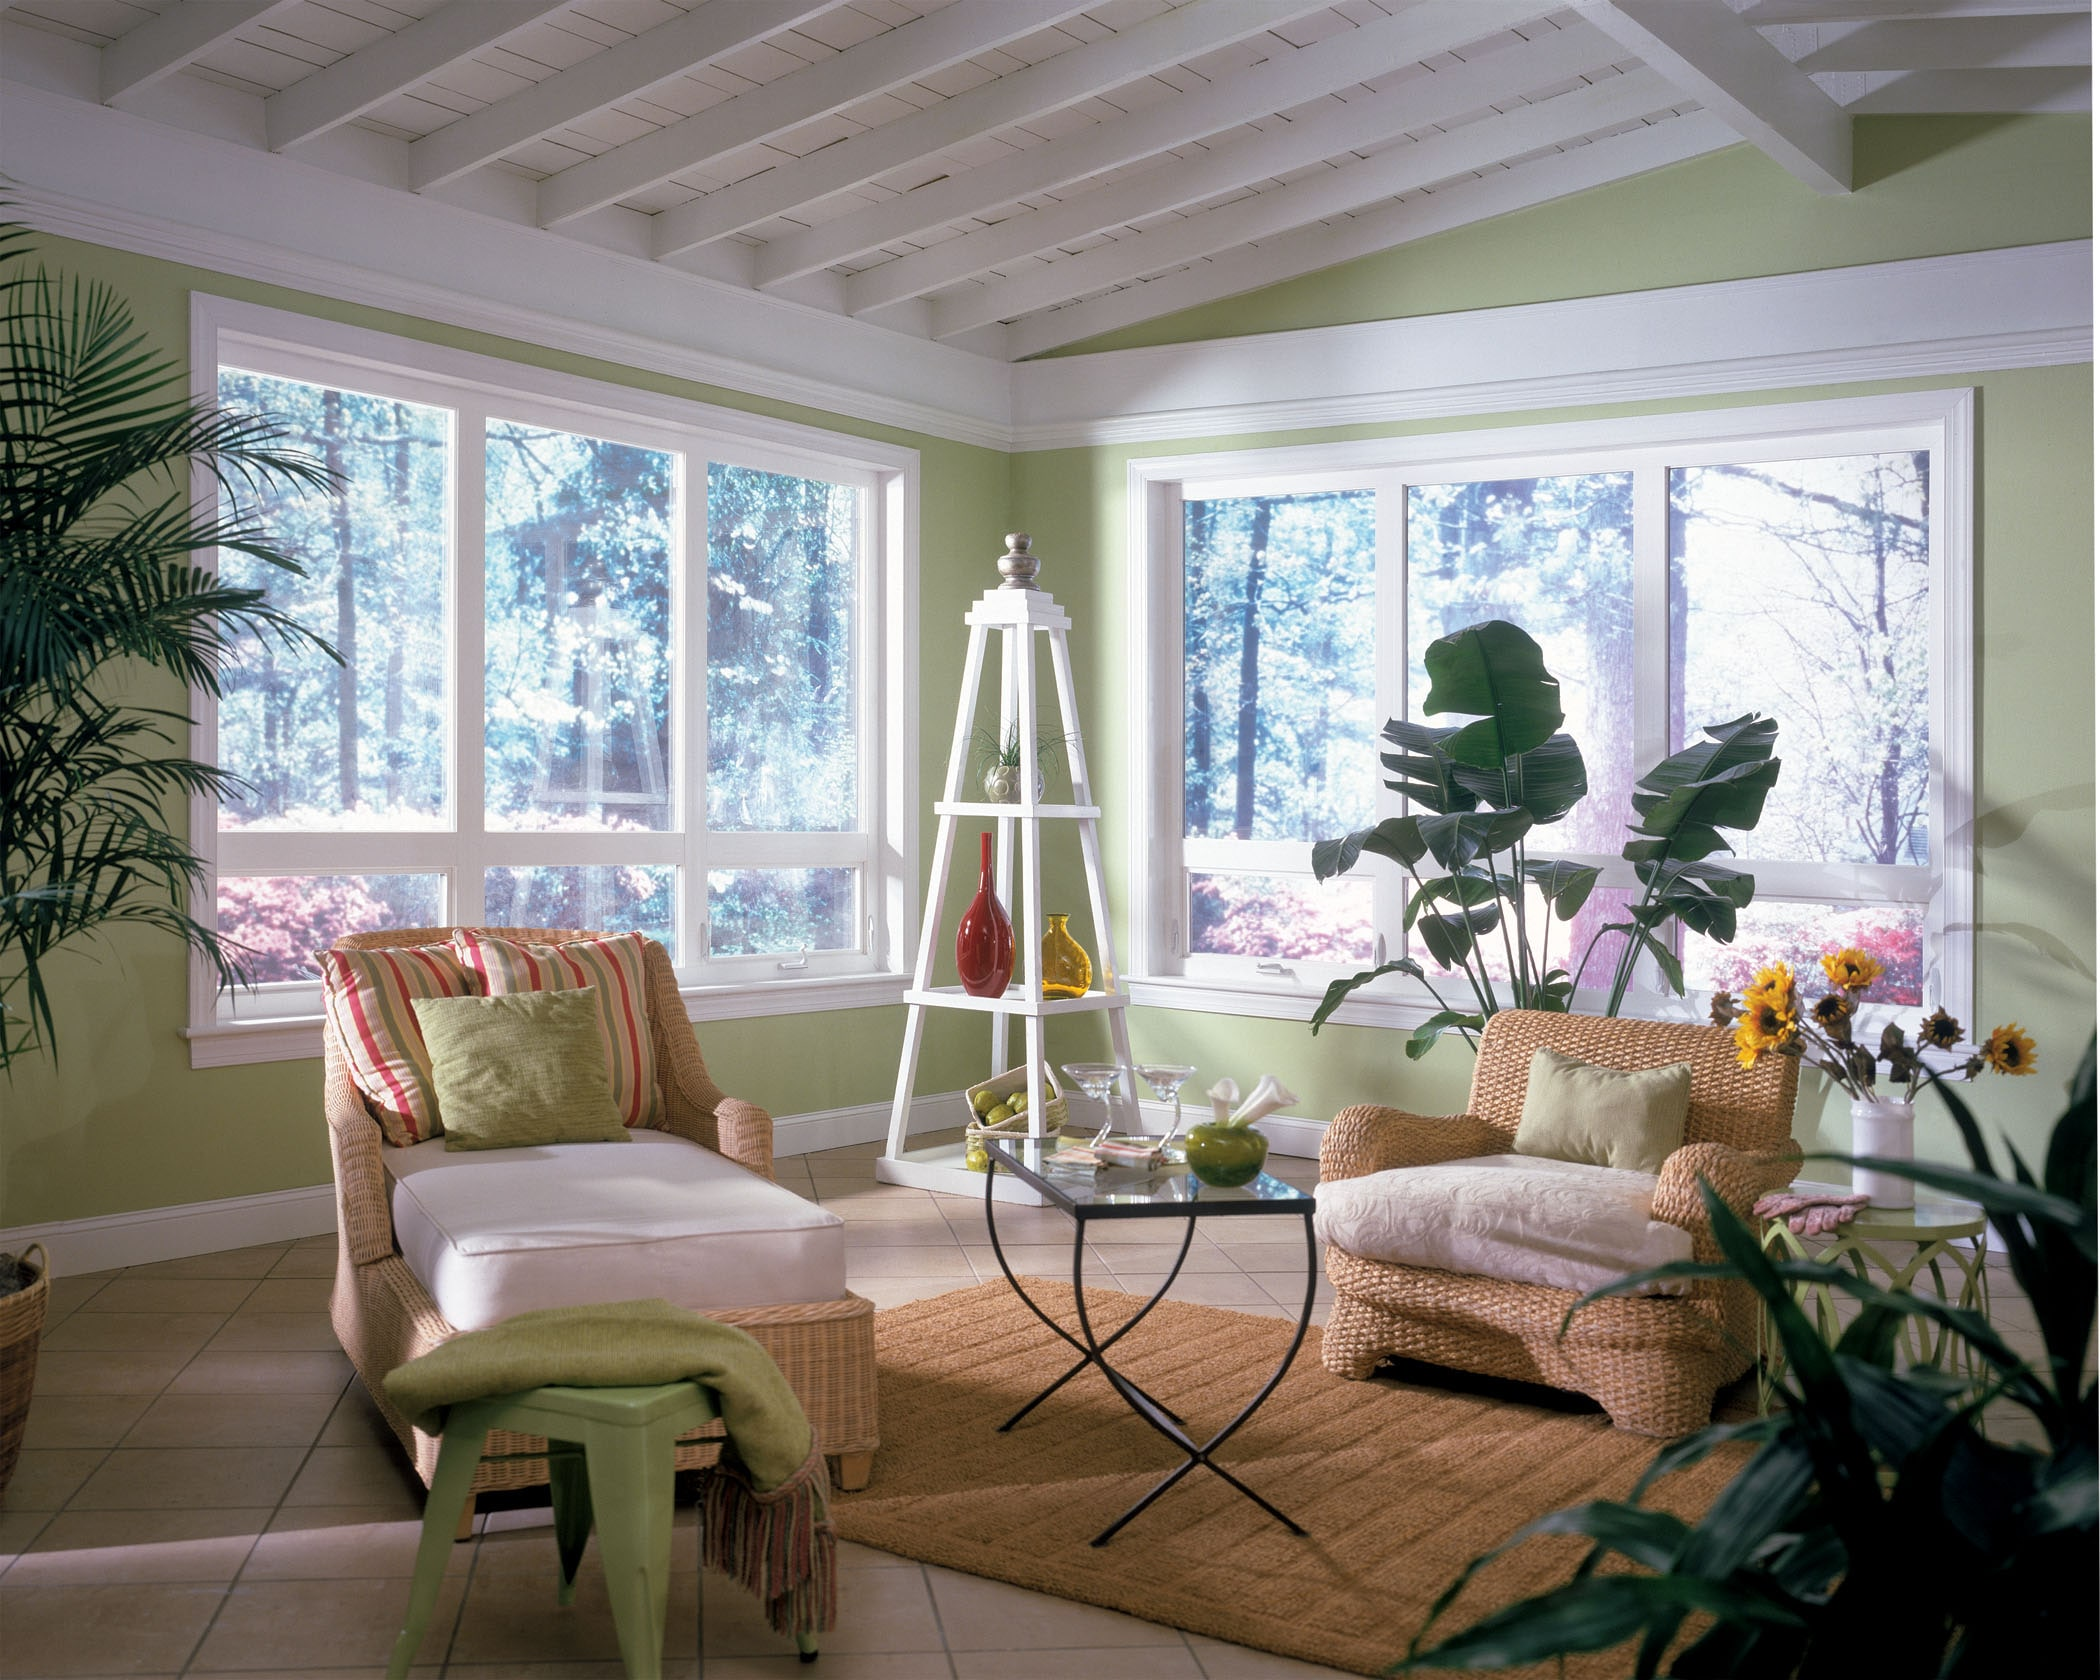 Awning windows brightens living room.